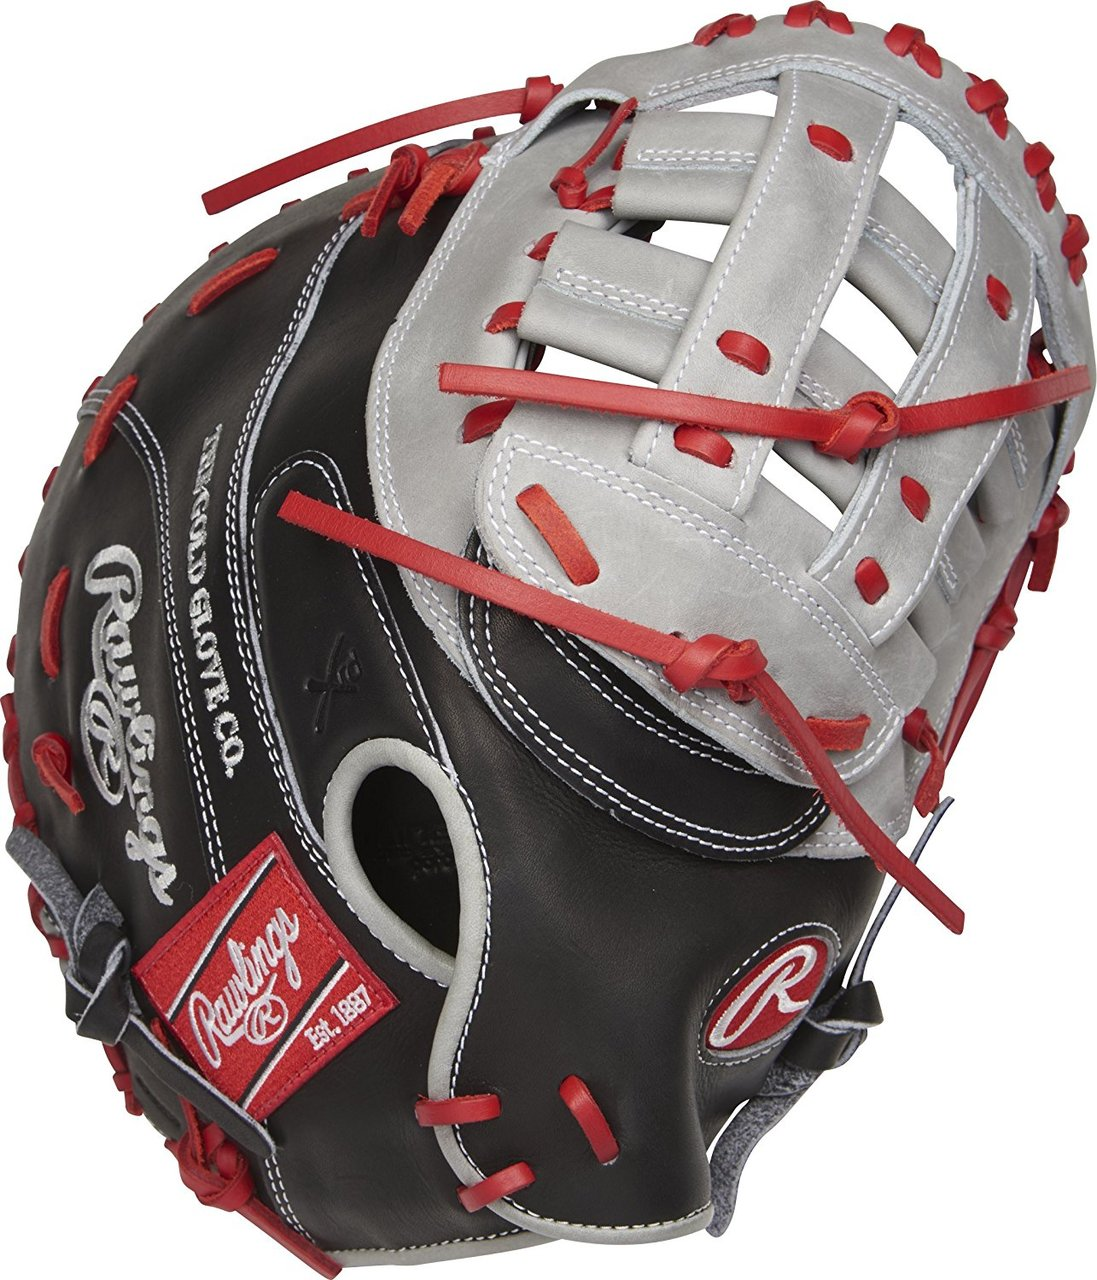 rawlings-heart-of-the-hide-salesman-sample-first-base-mitt-profm20bgs-right-hand-throw PROFM20BGS-NOTAGS-RightHandThrow   Constructed from Rawlings world-renowned Heart of the Hide steer leather Heart